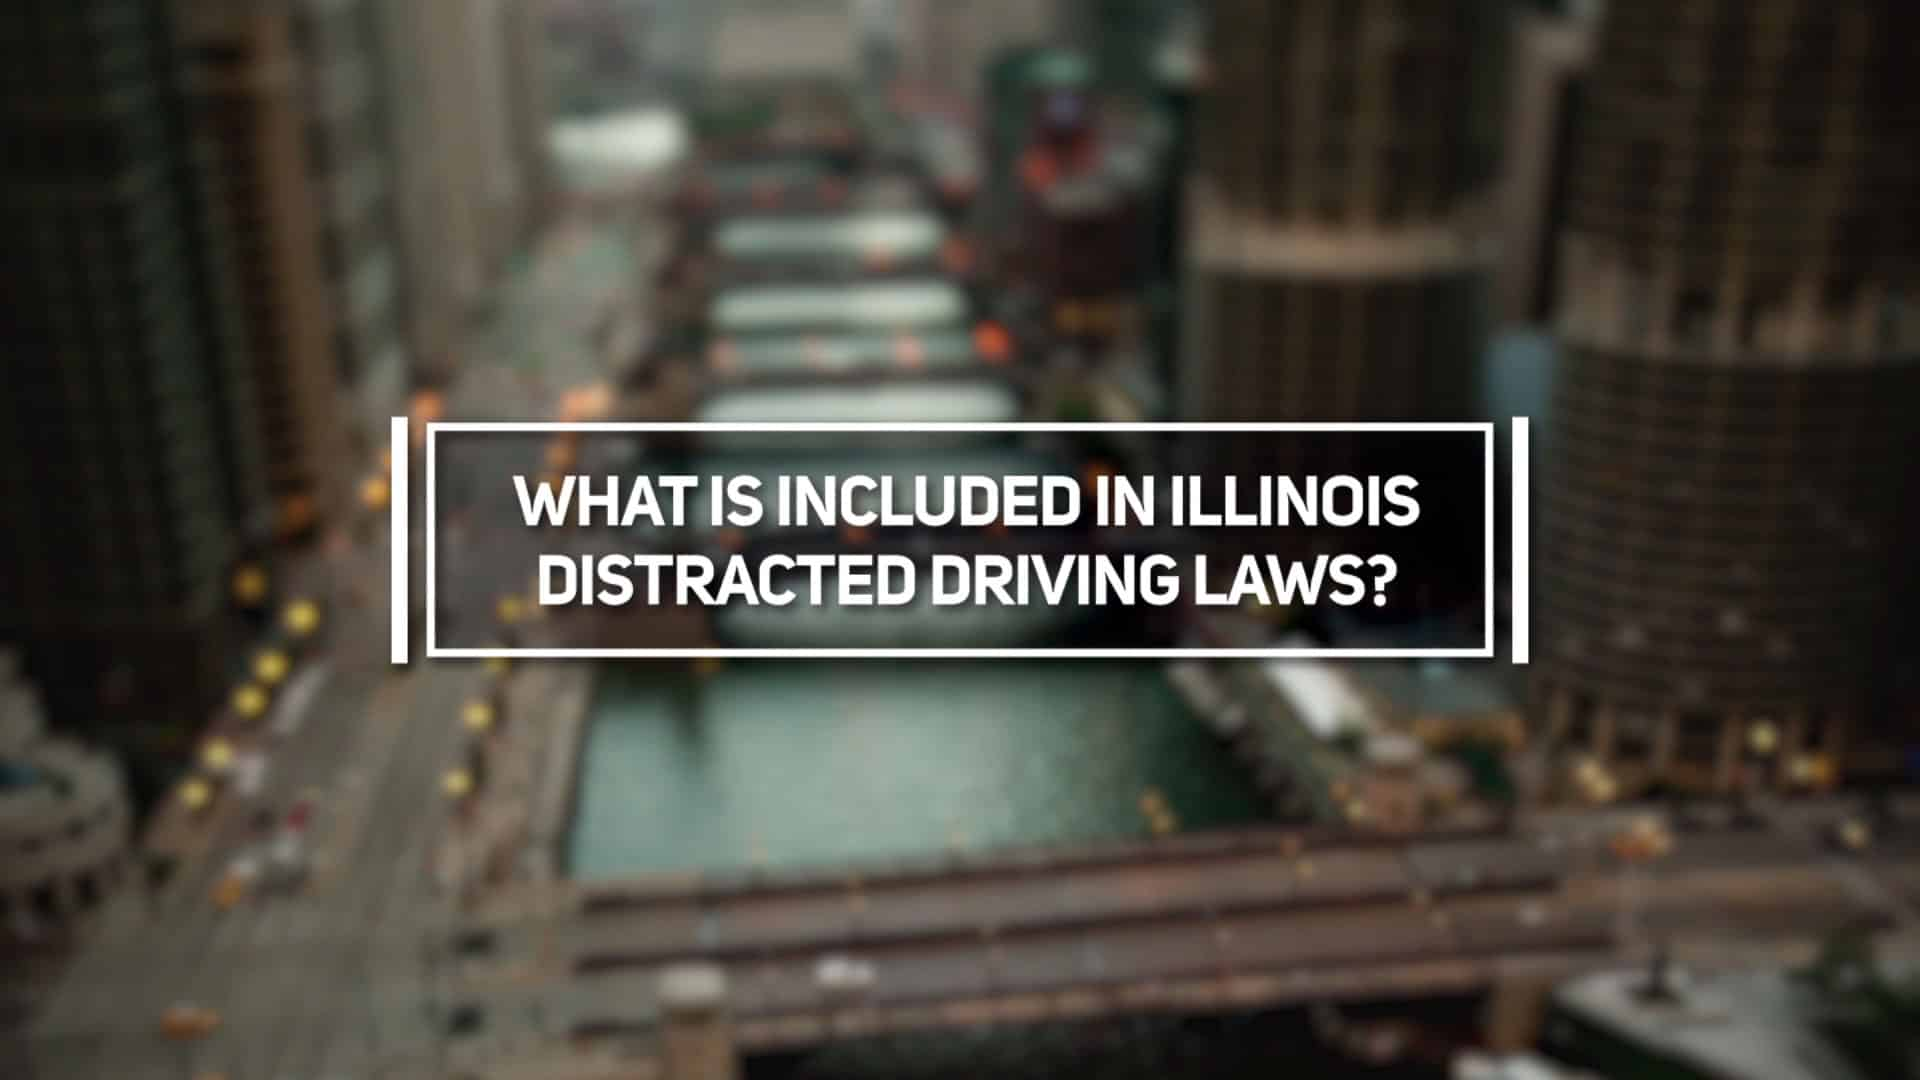 What is Included in Illinois Distracted Driving Laws?